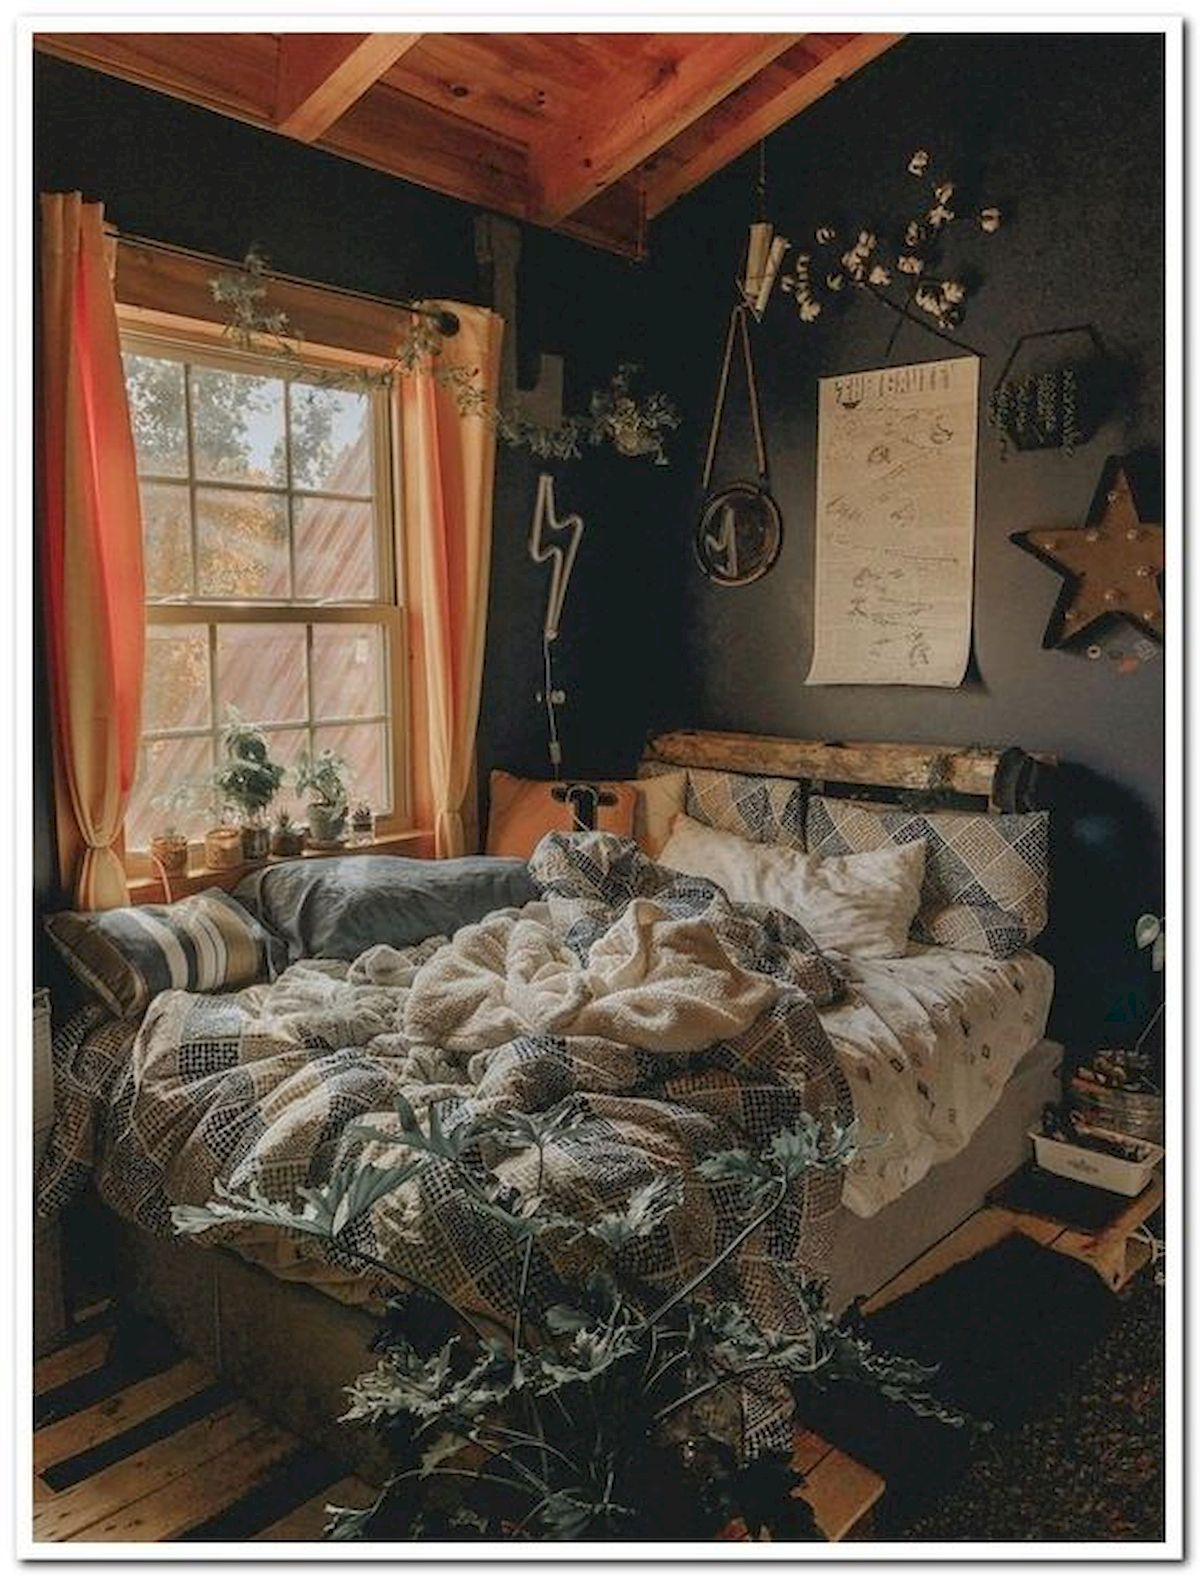 30 Cozy Fall Decoration Ideas For Your Bedroom (14)